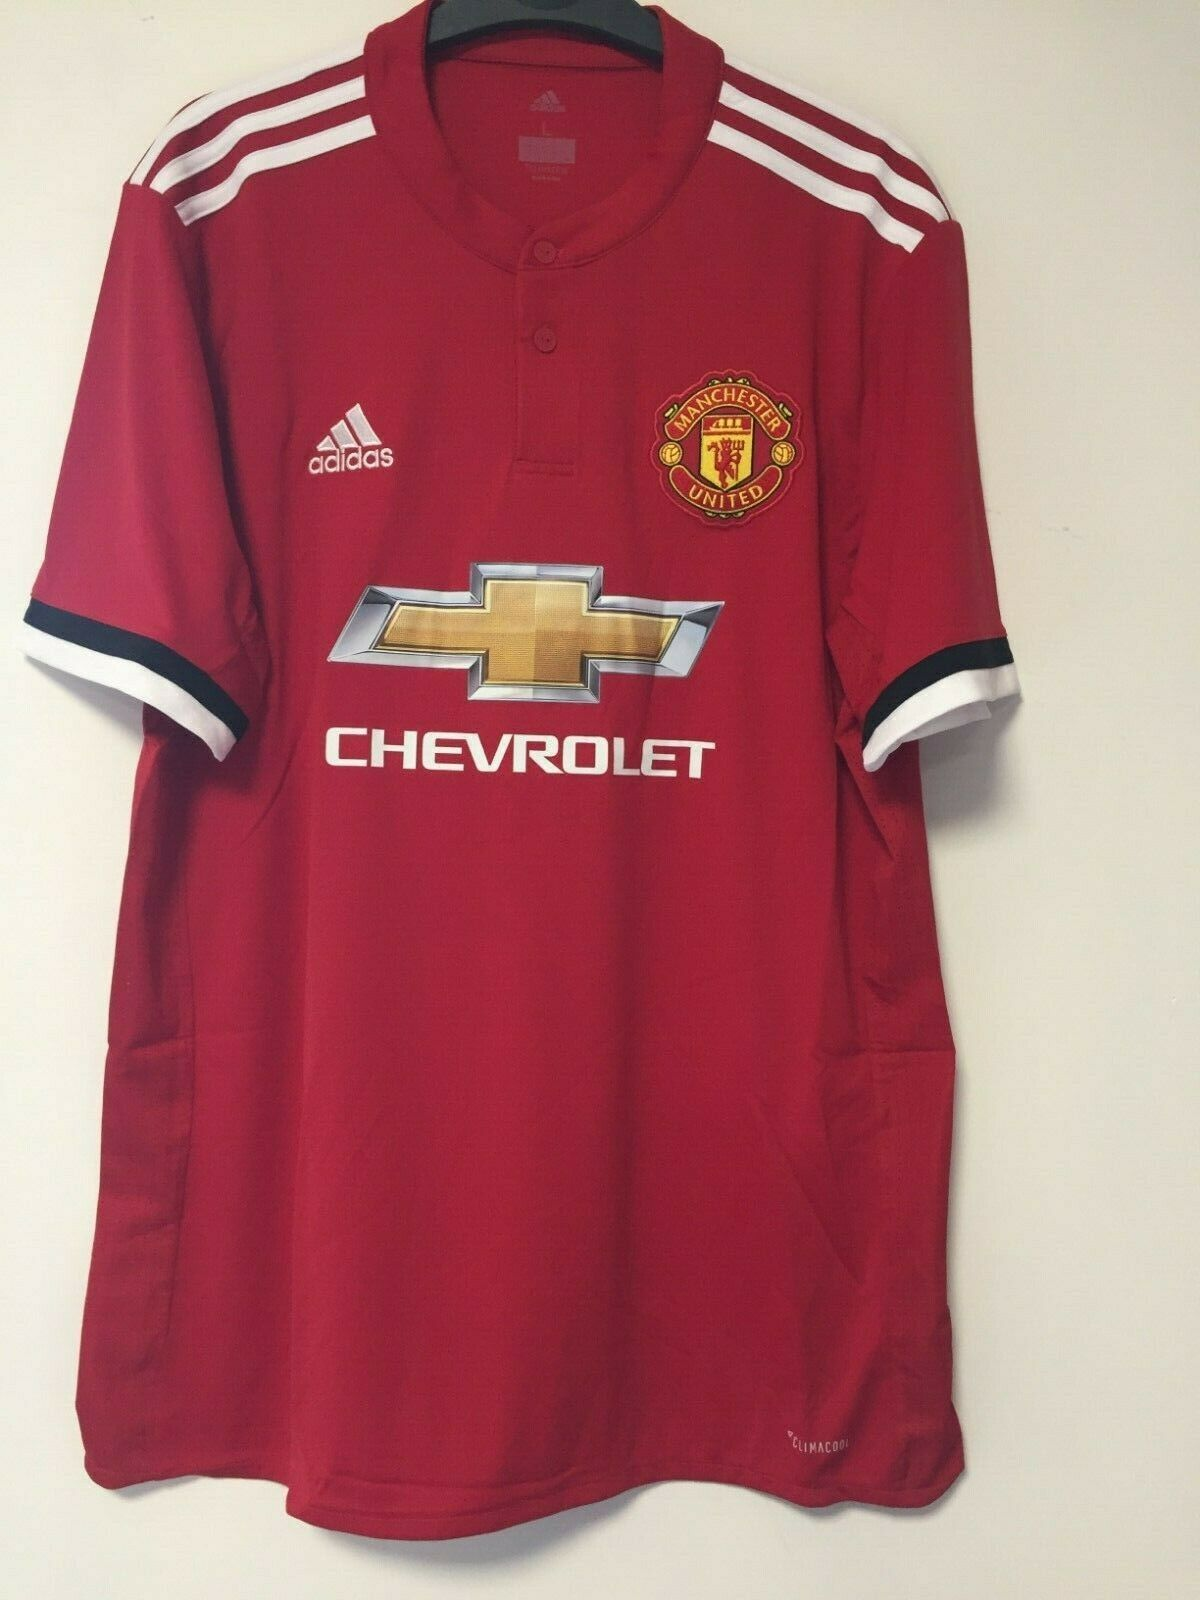 ADIDAS Manchester United Home Jersey 201718 grandi TD094 NN 10